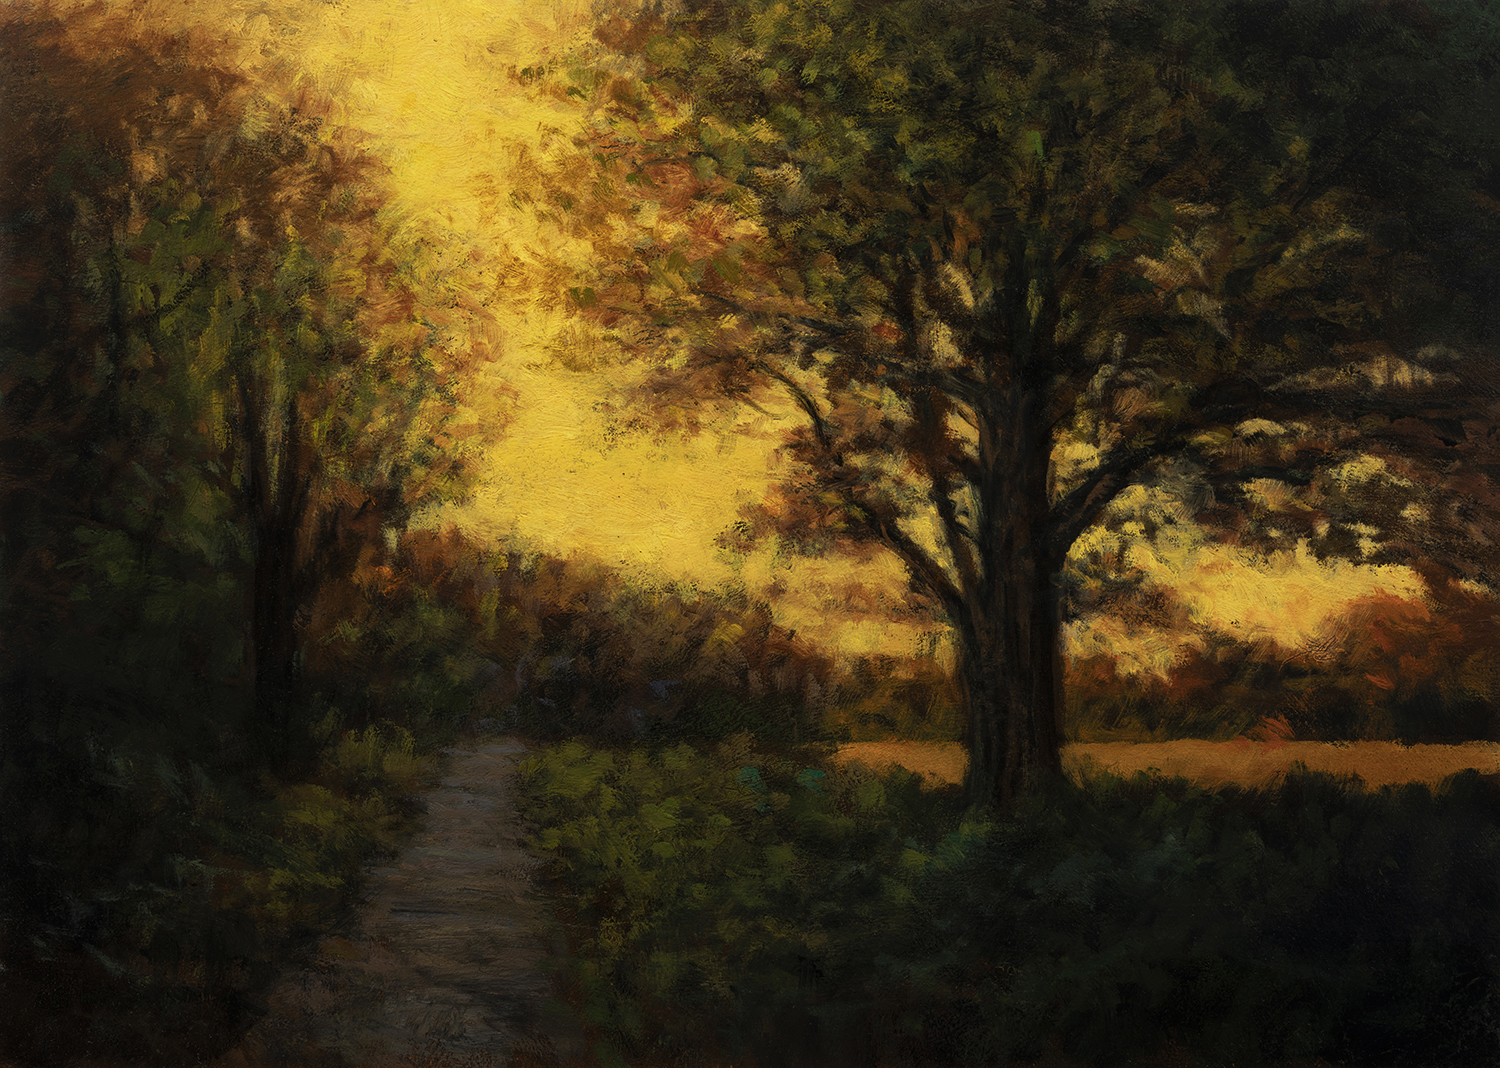 Golden Hour by M Francis McCarthy - 10x14 Oil on Wood Panel